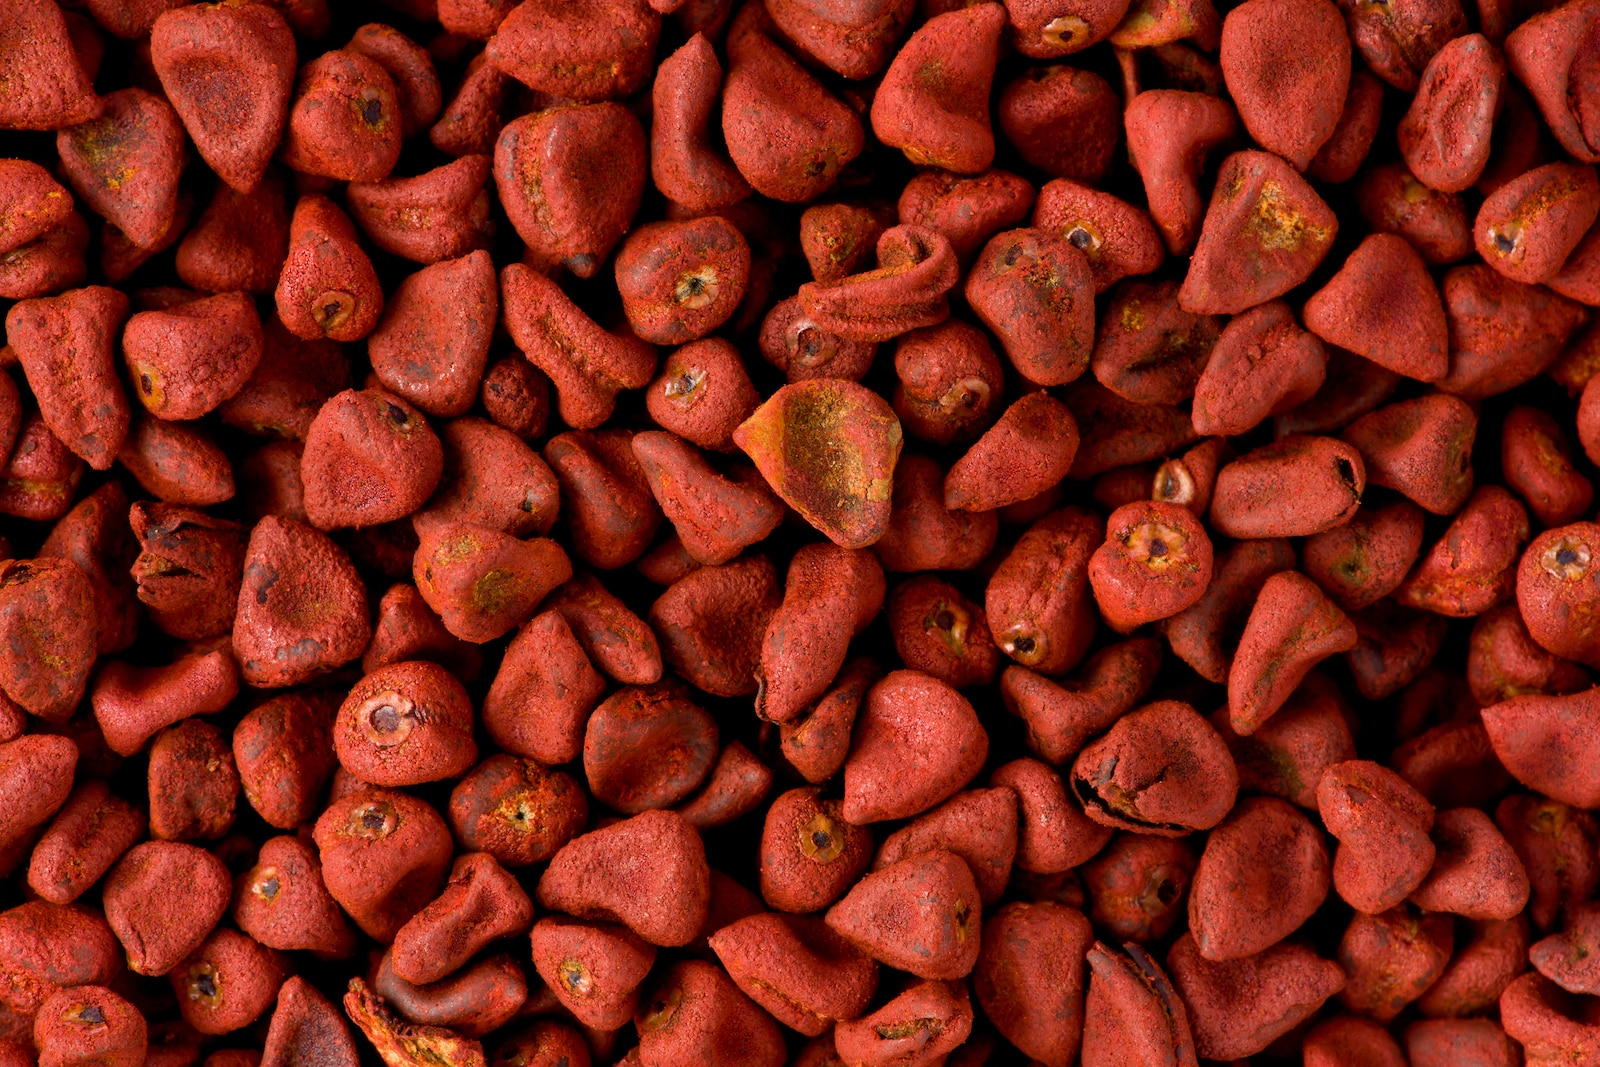 Cooking With Annatto Seeds: The Dos And Don'ts